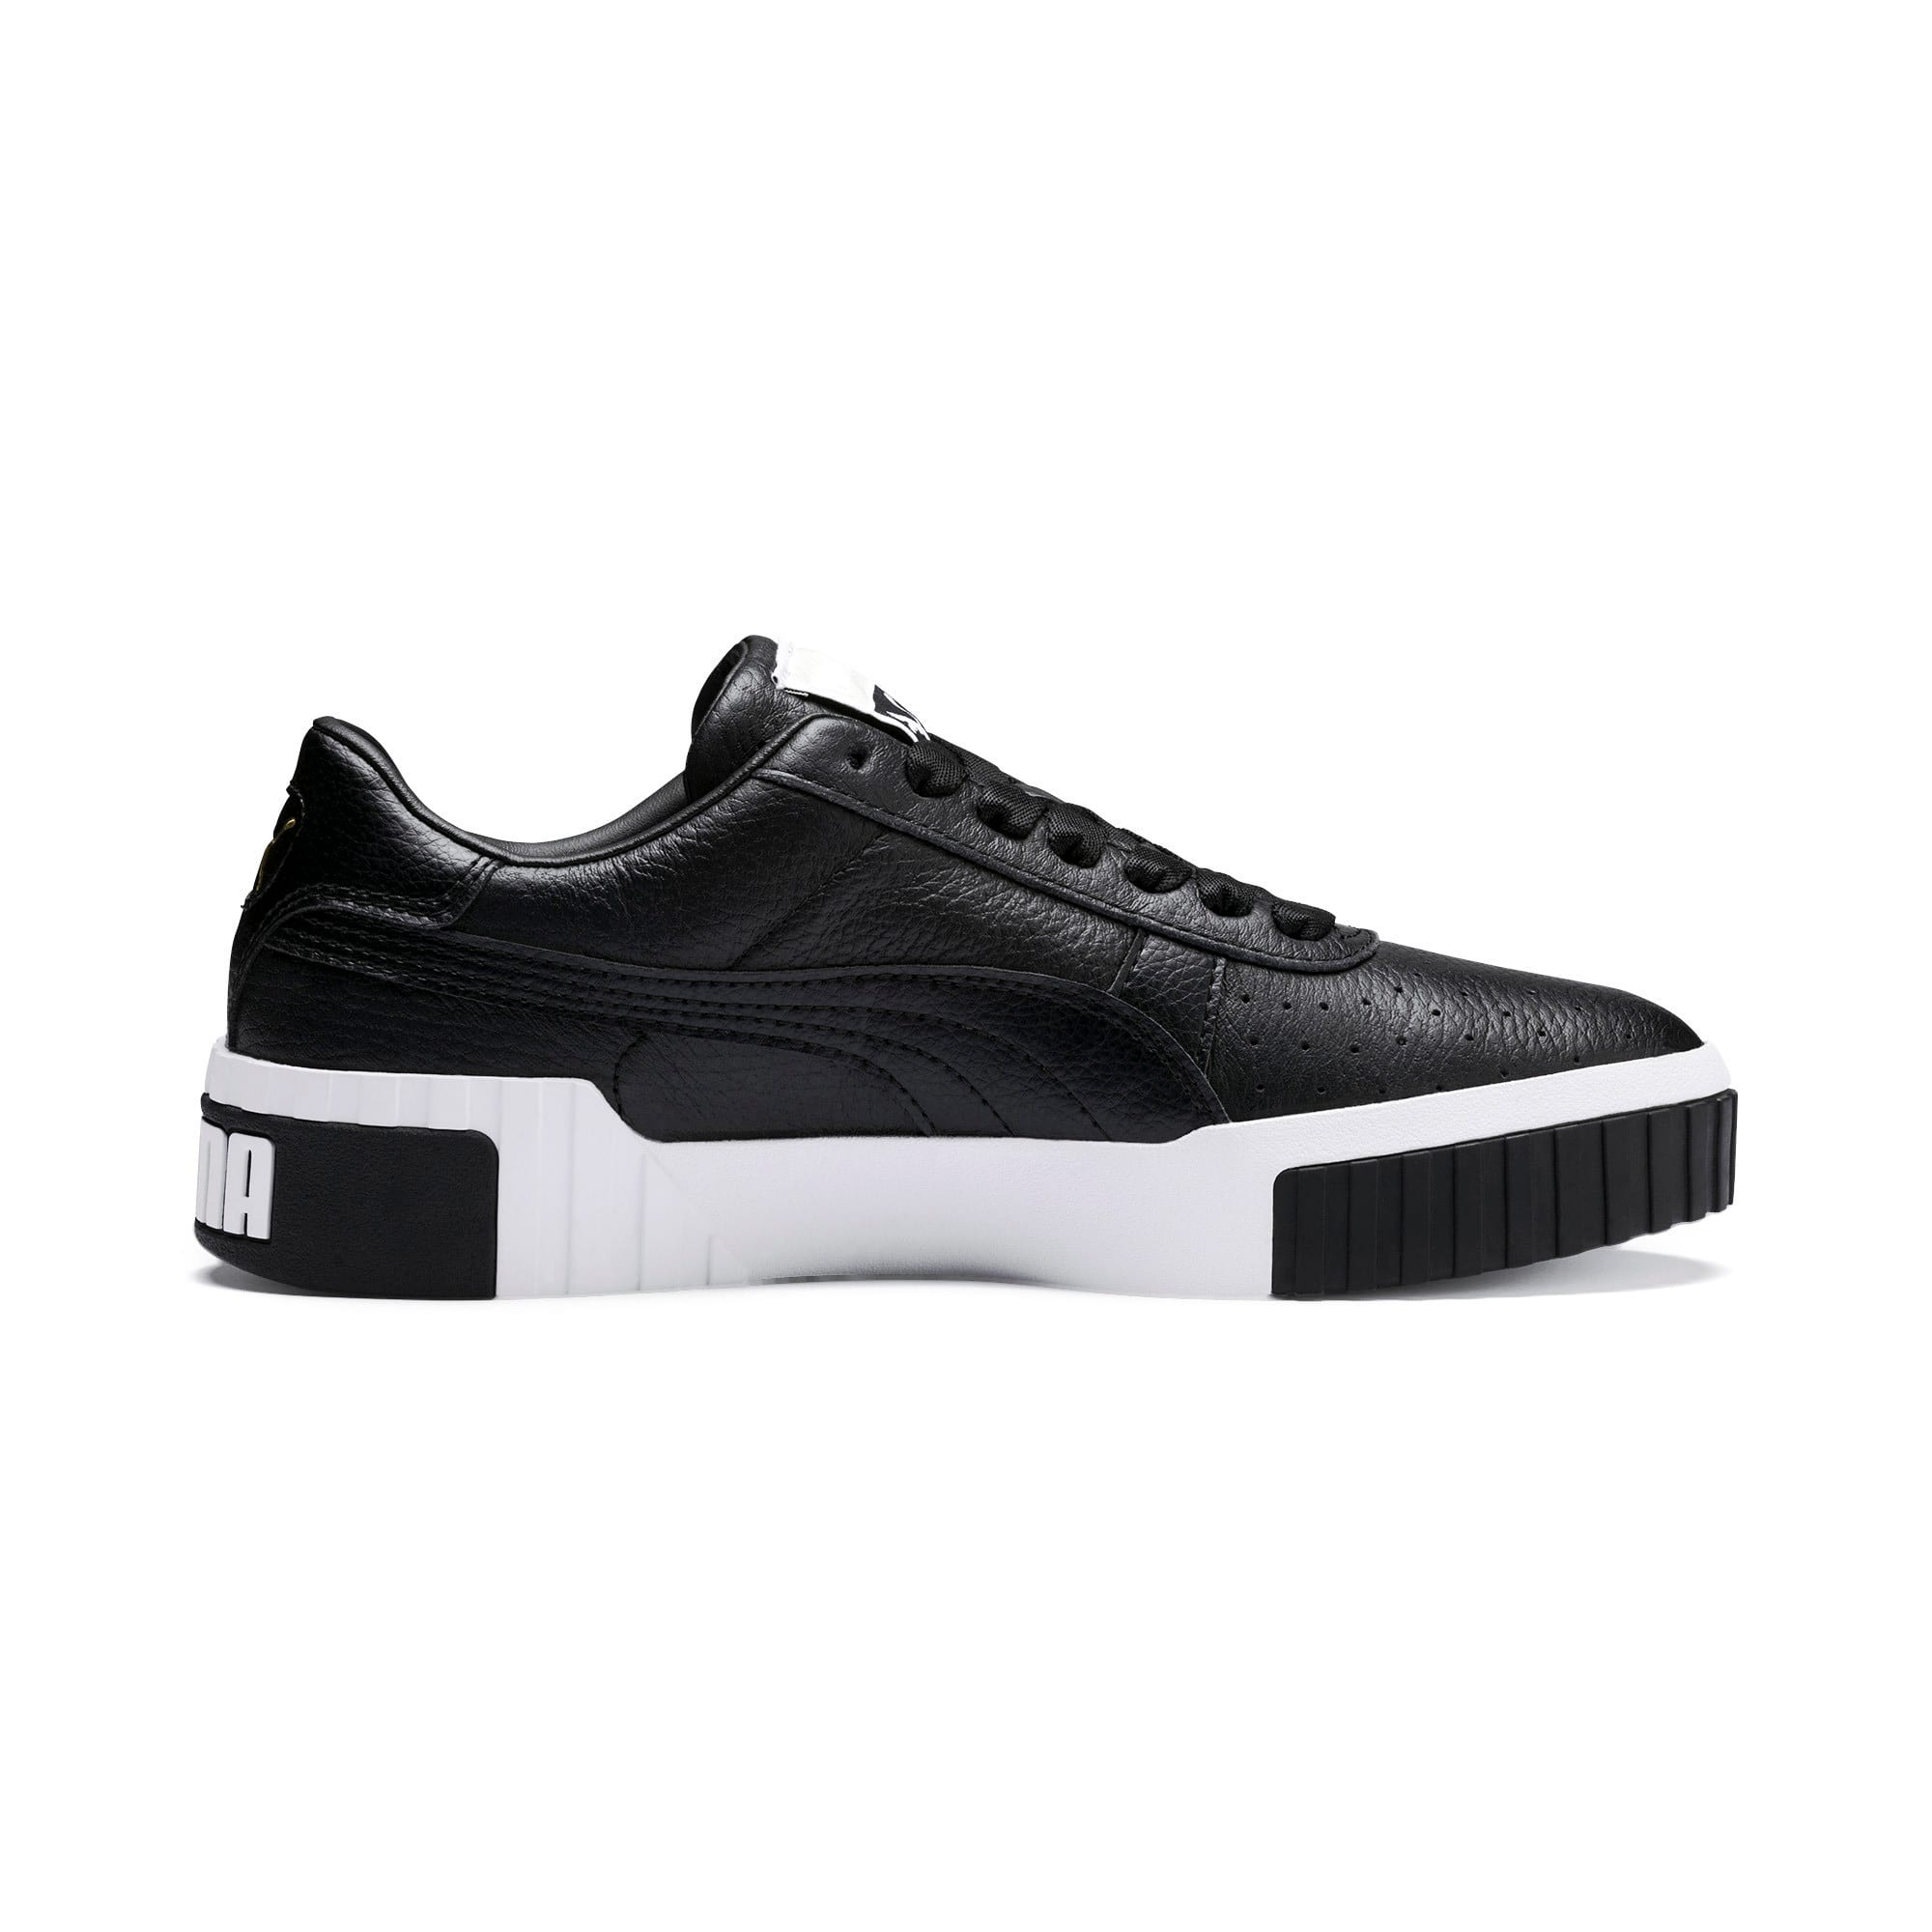 Thumbnail 6 of Cali Women's Trainers, Puma Black-Puma White, medium